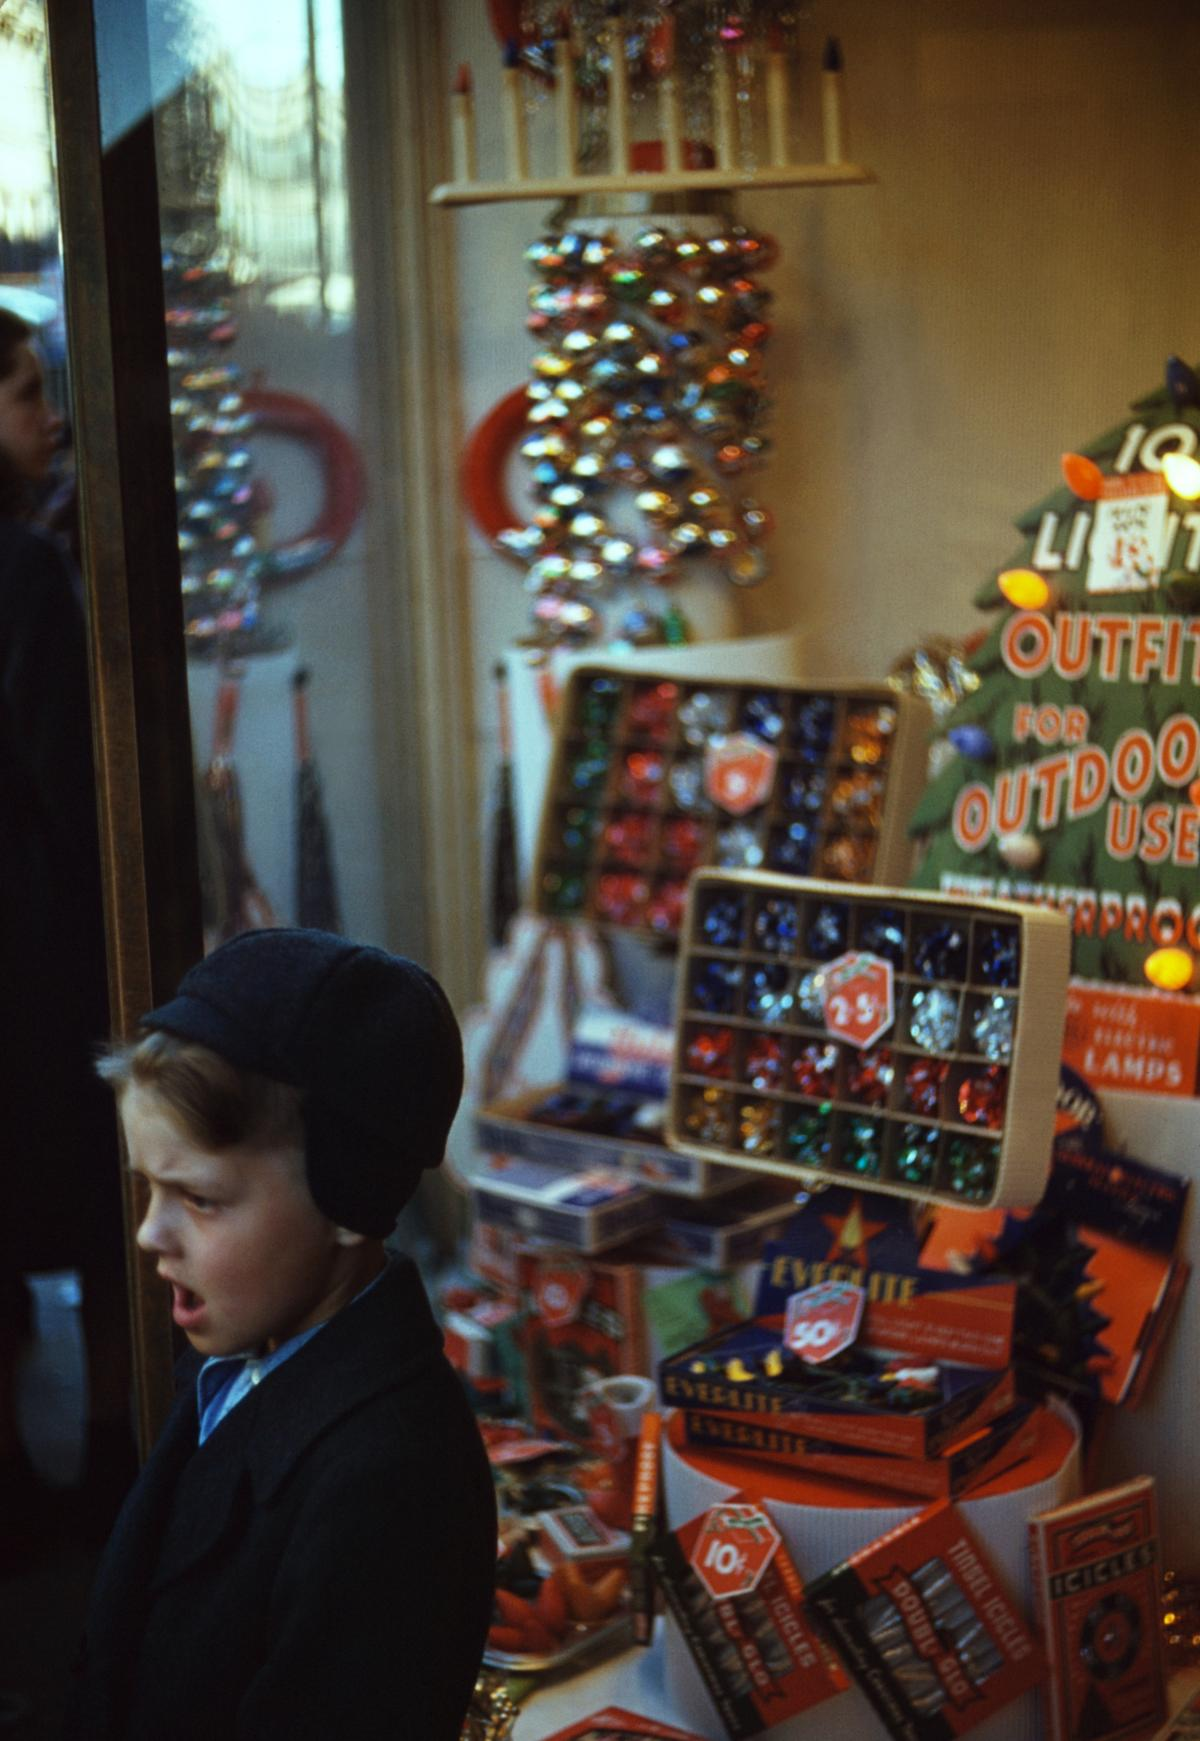 Boy beside Store Window Display of Christmas Ornaments. Original from Library of Congress.